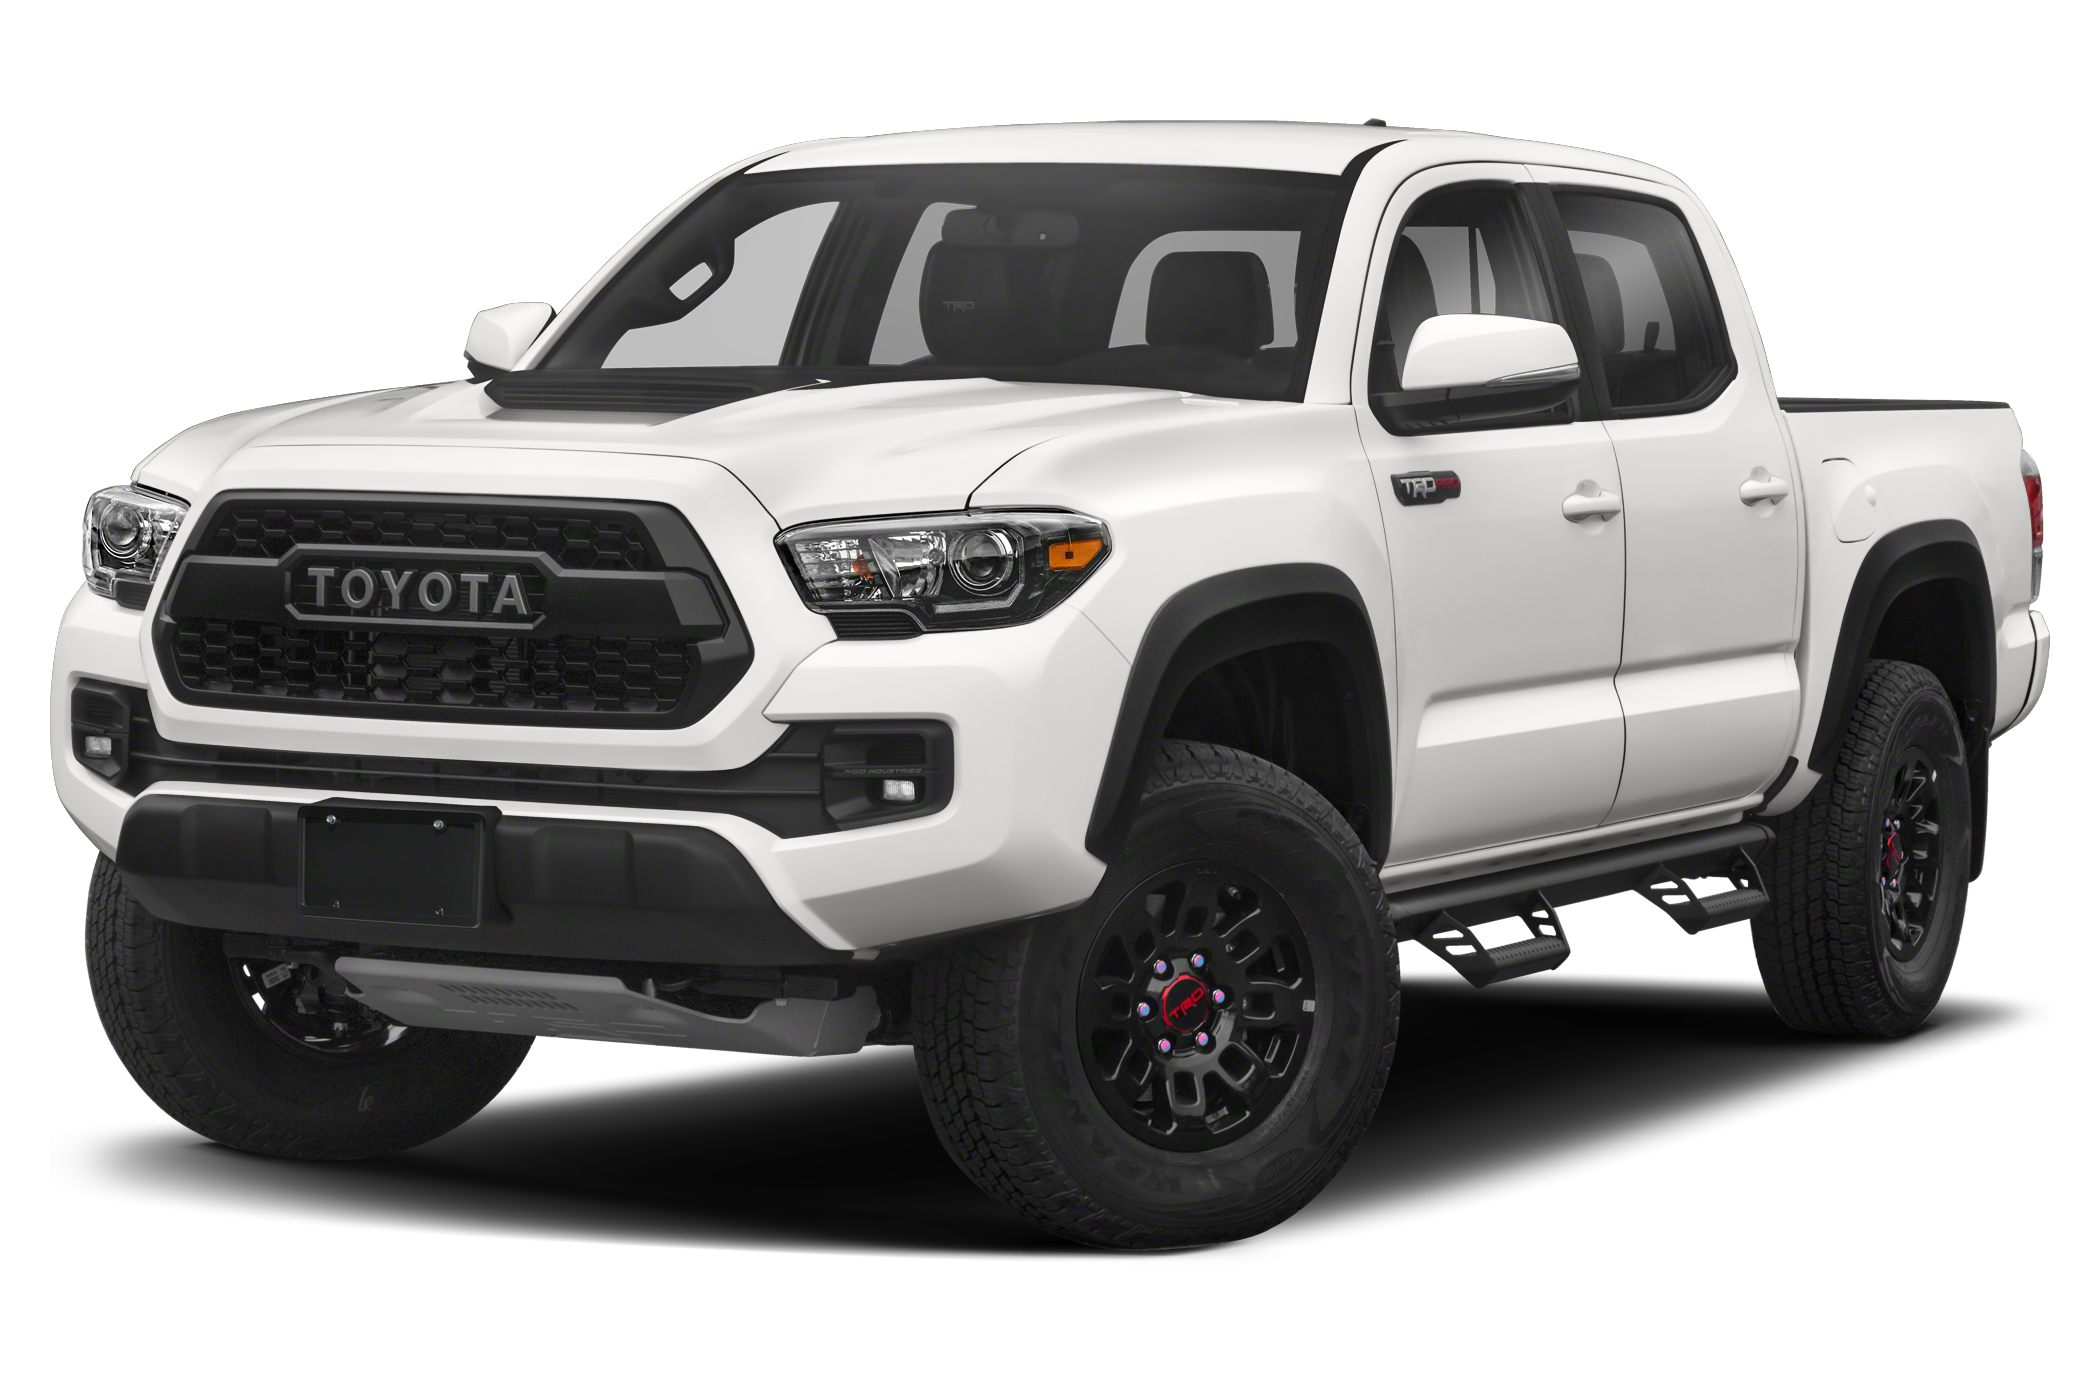 2017 Toyota Tacoma TRD Pro Westboro Toyota is proud to present HASSLE FREE BUYING EXPERIENCE with